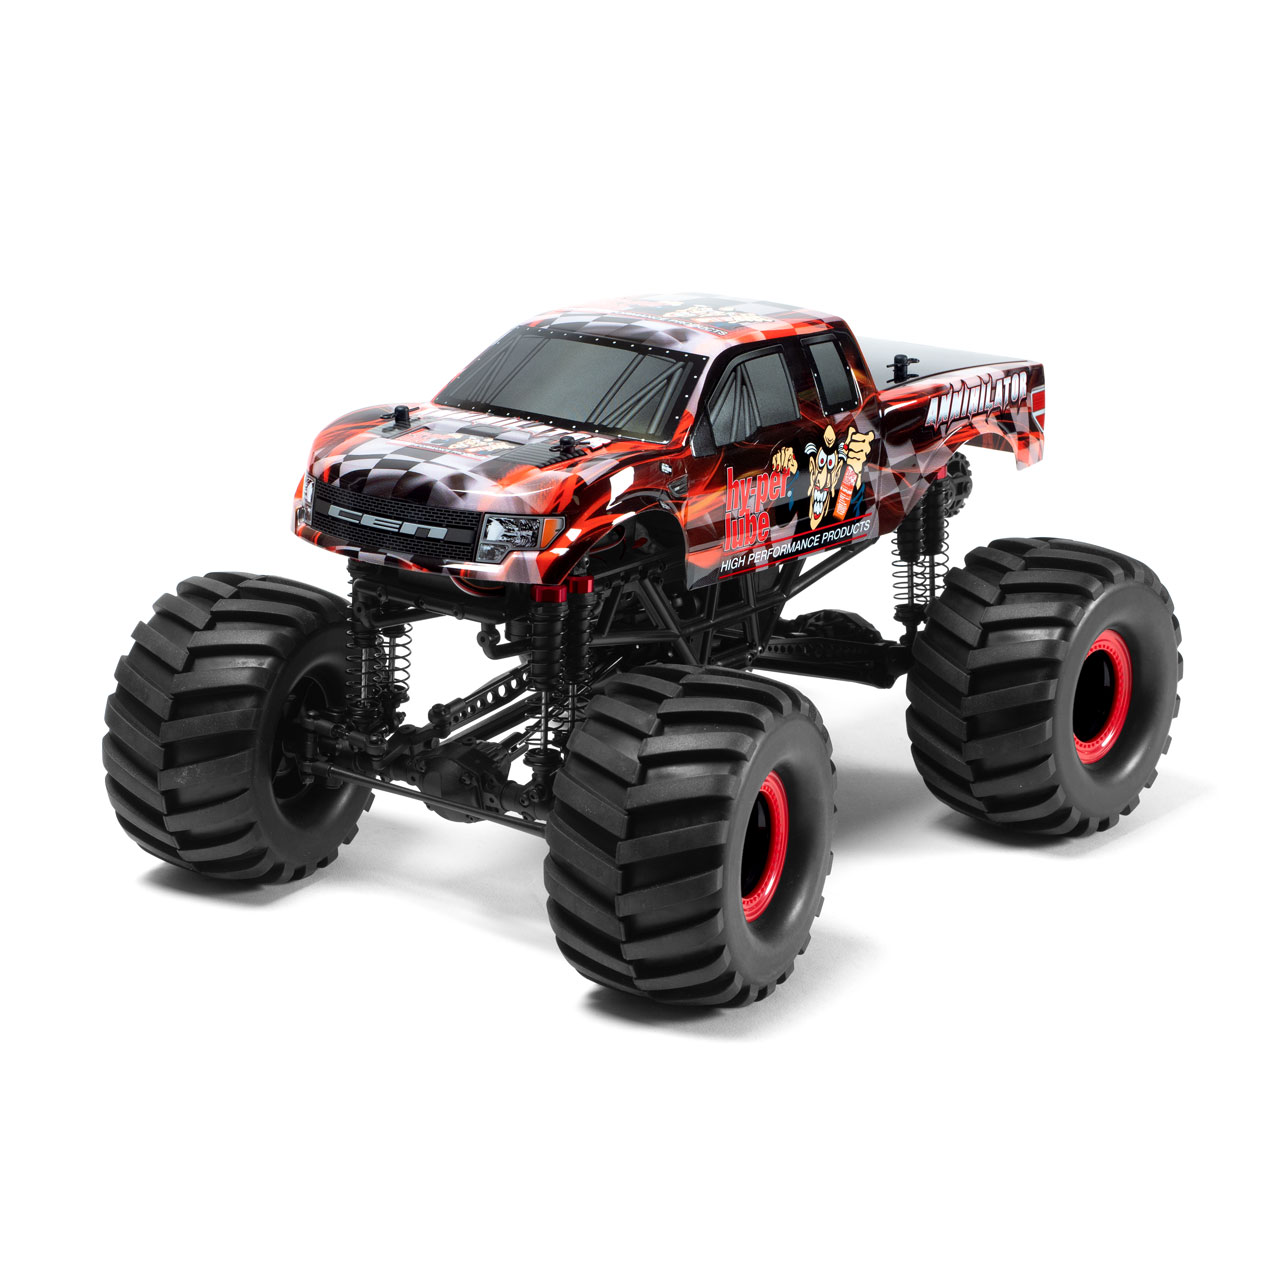 Cen Hl150 Monster Truck 4wd Solid Axle 1 10